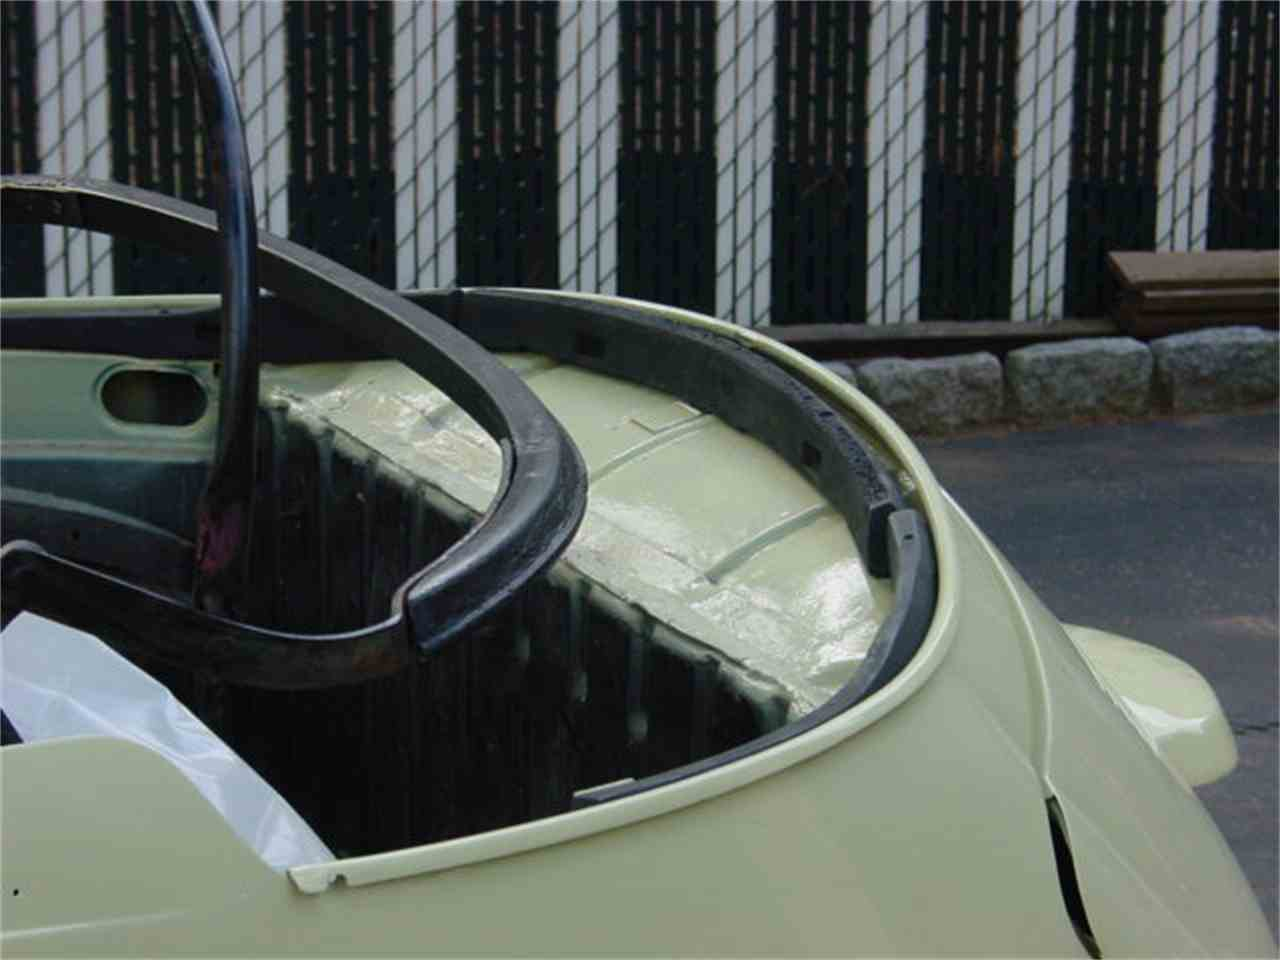 Large Picture of 1968 Volkswagen Beetle located in North Carolina Offered by a Private Seller - DVTX